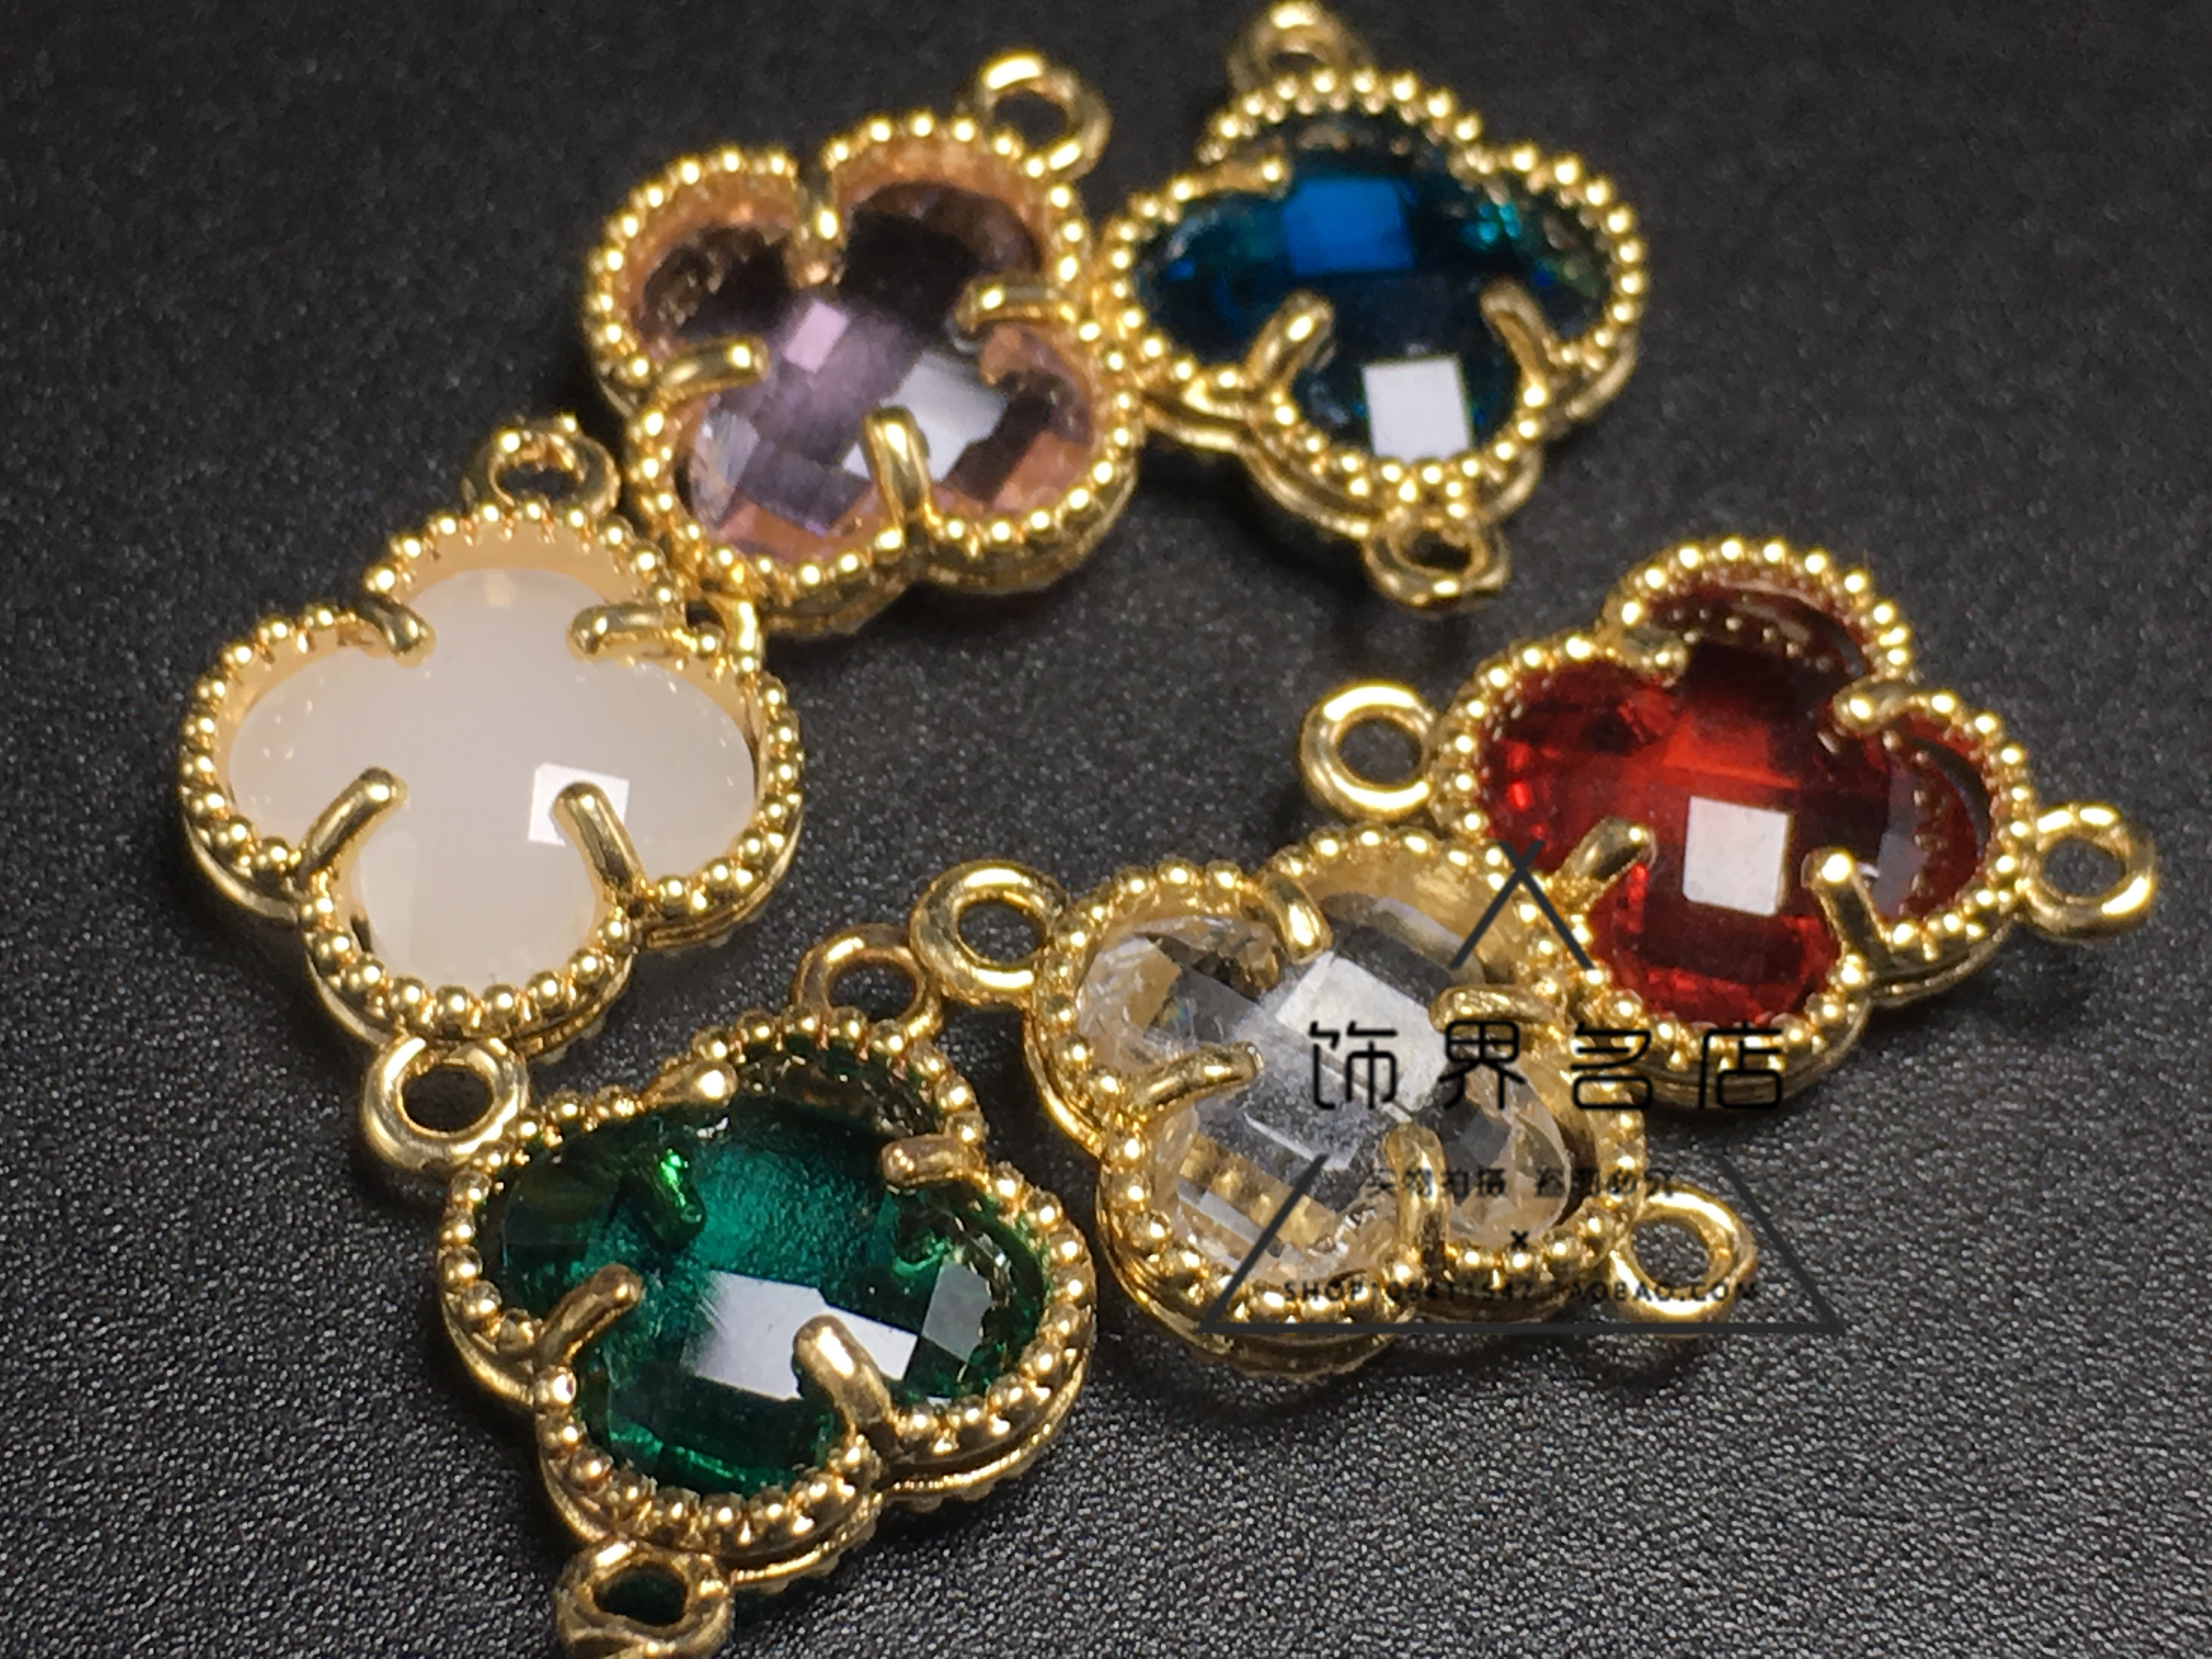 DIY accessories 12mm clover crystal glass copper clad gold plated earrings bracelet clothing connecting materials